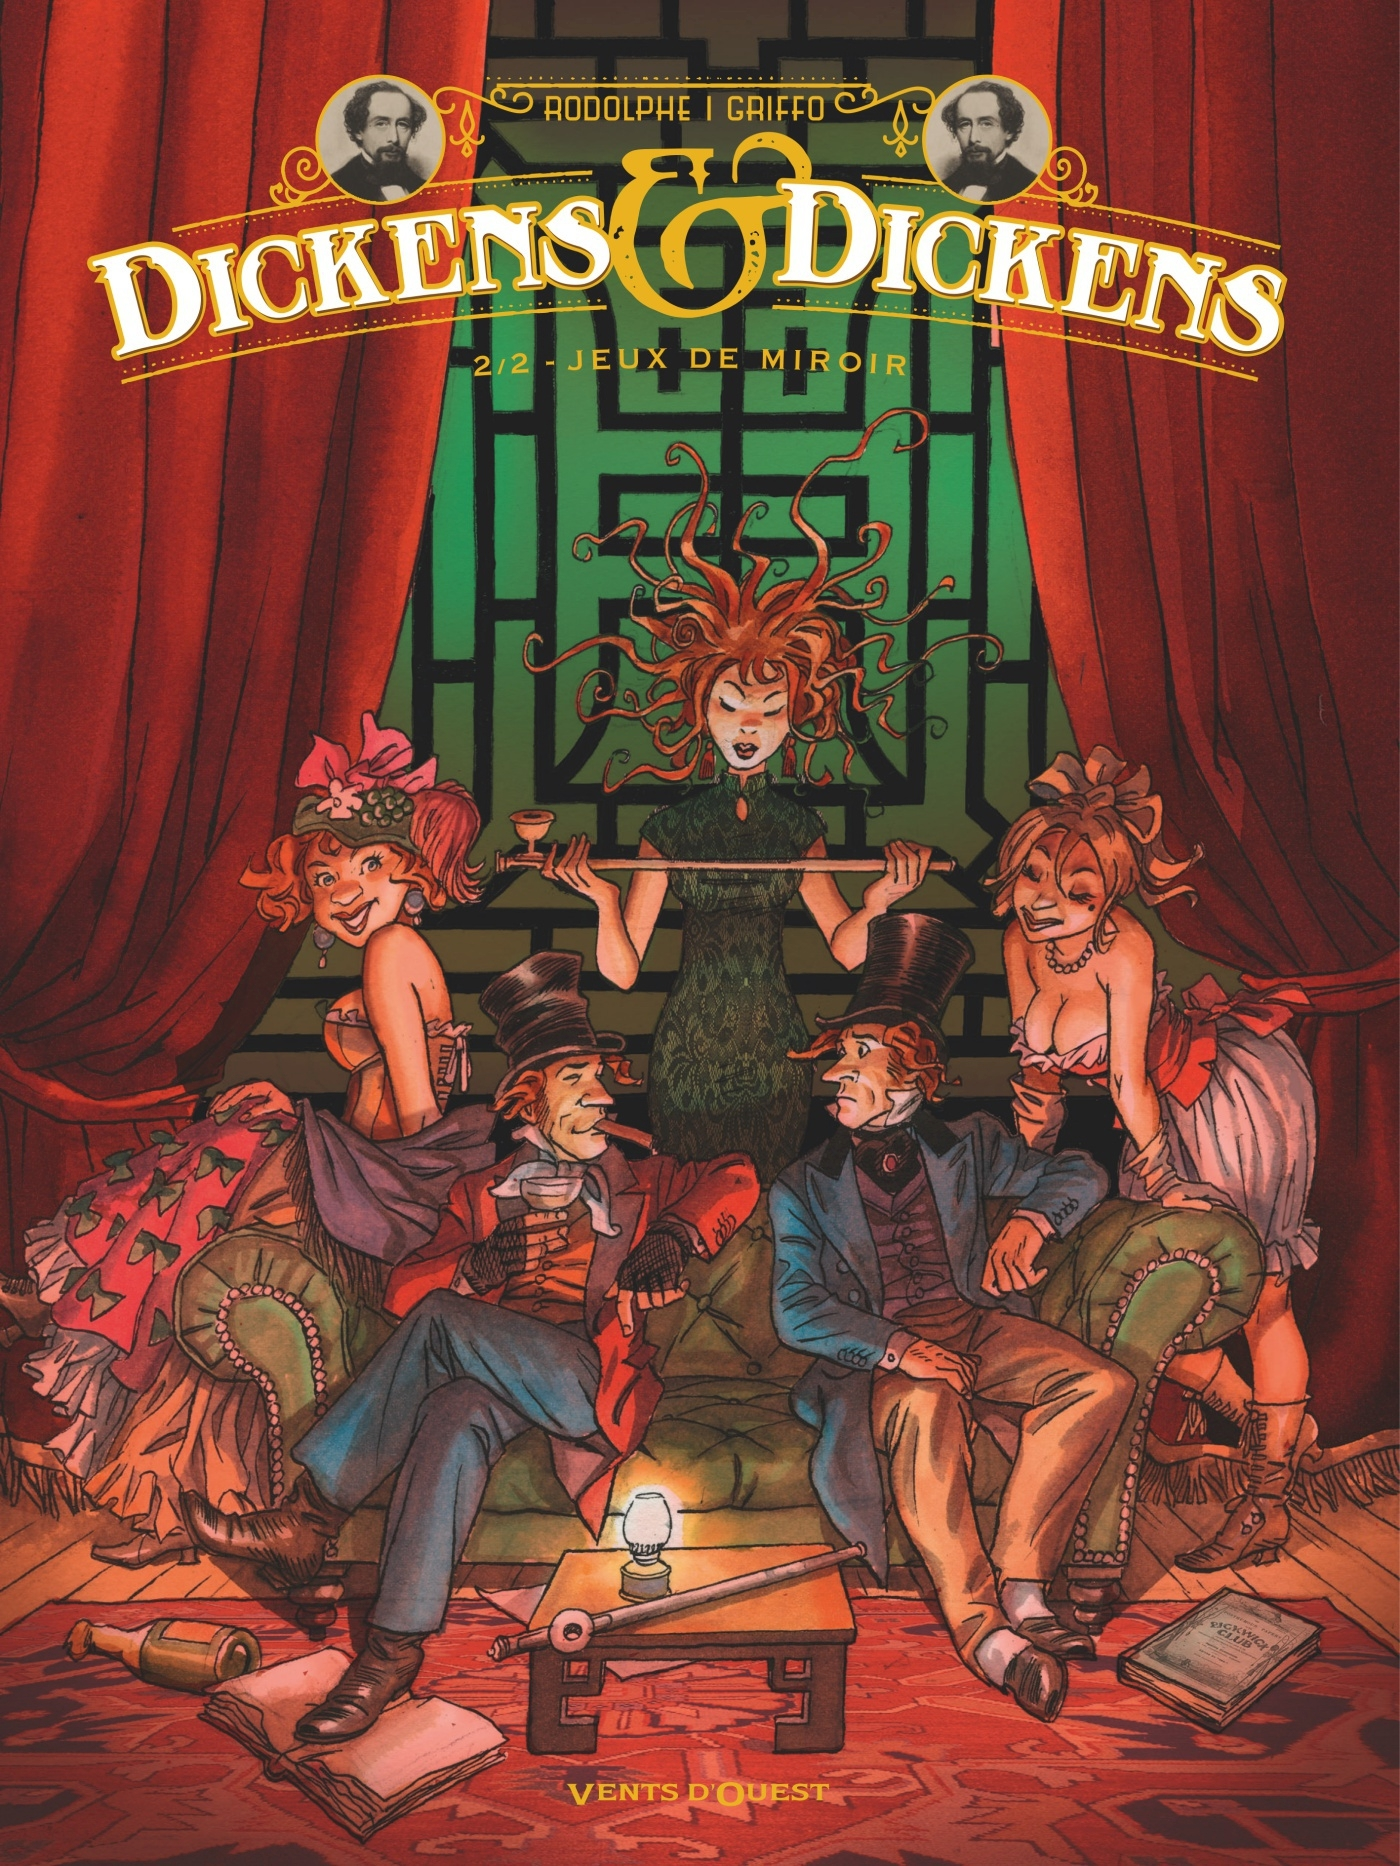 Dickens & Dickens - Tome 02